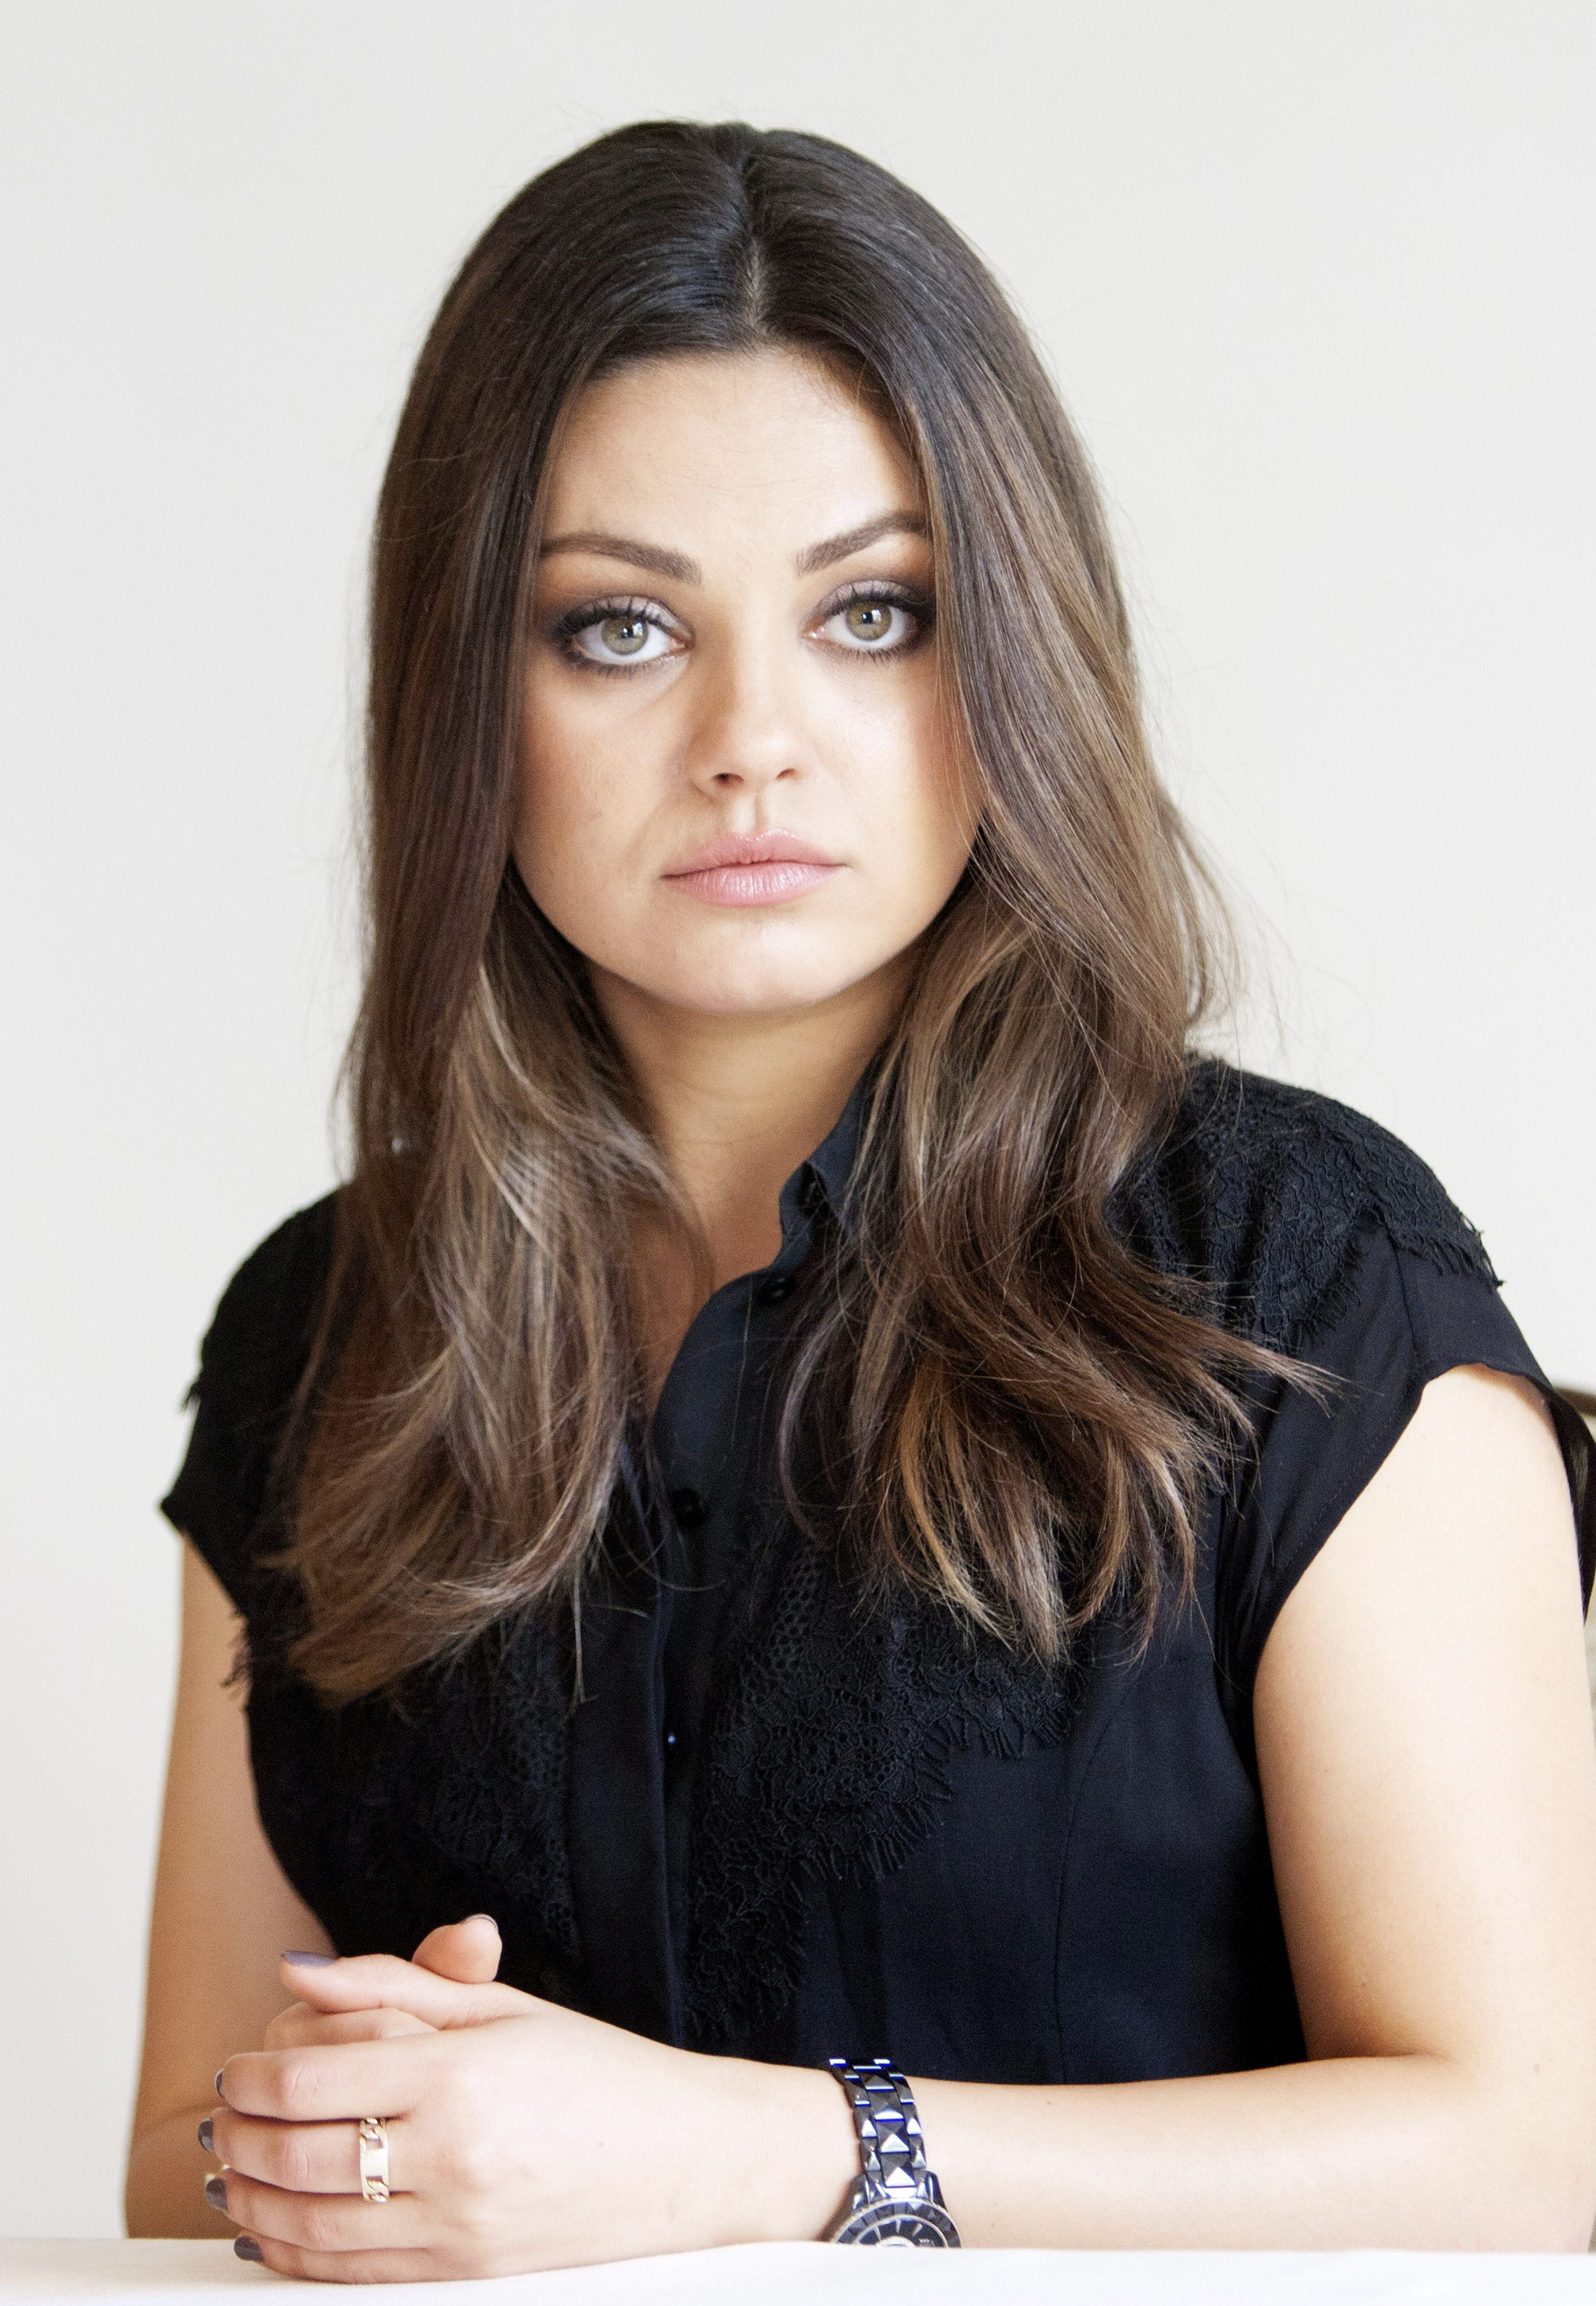 55 shocking images of celebrities before and after photoshop lady - Mila Doesn T Need The Retouching Here S Proof Photoshop Mila Kunis Body Celebrity Gossipgirl